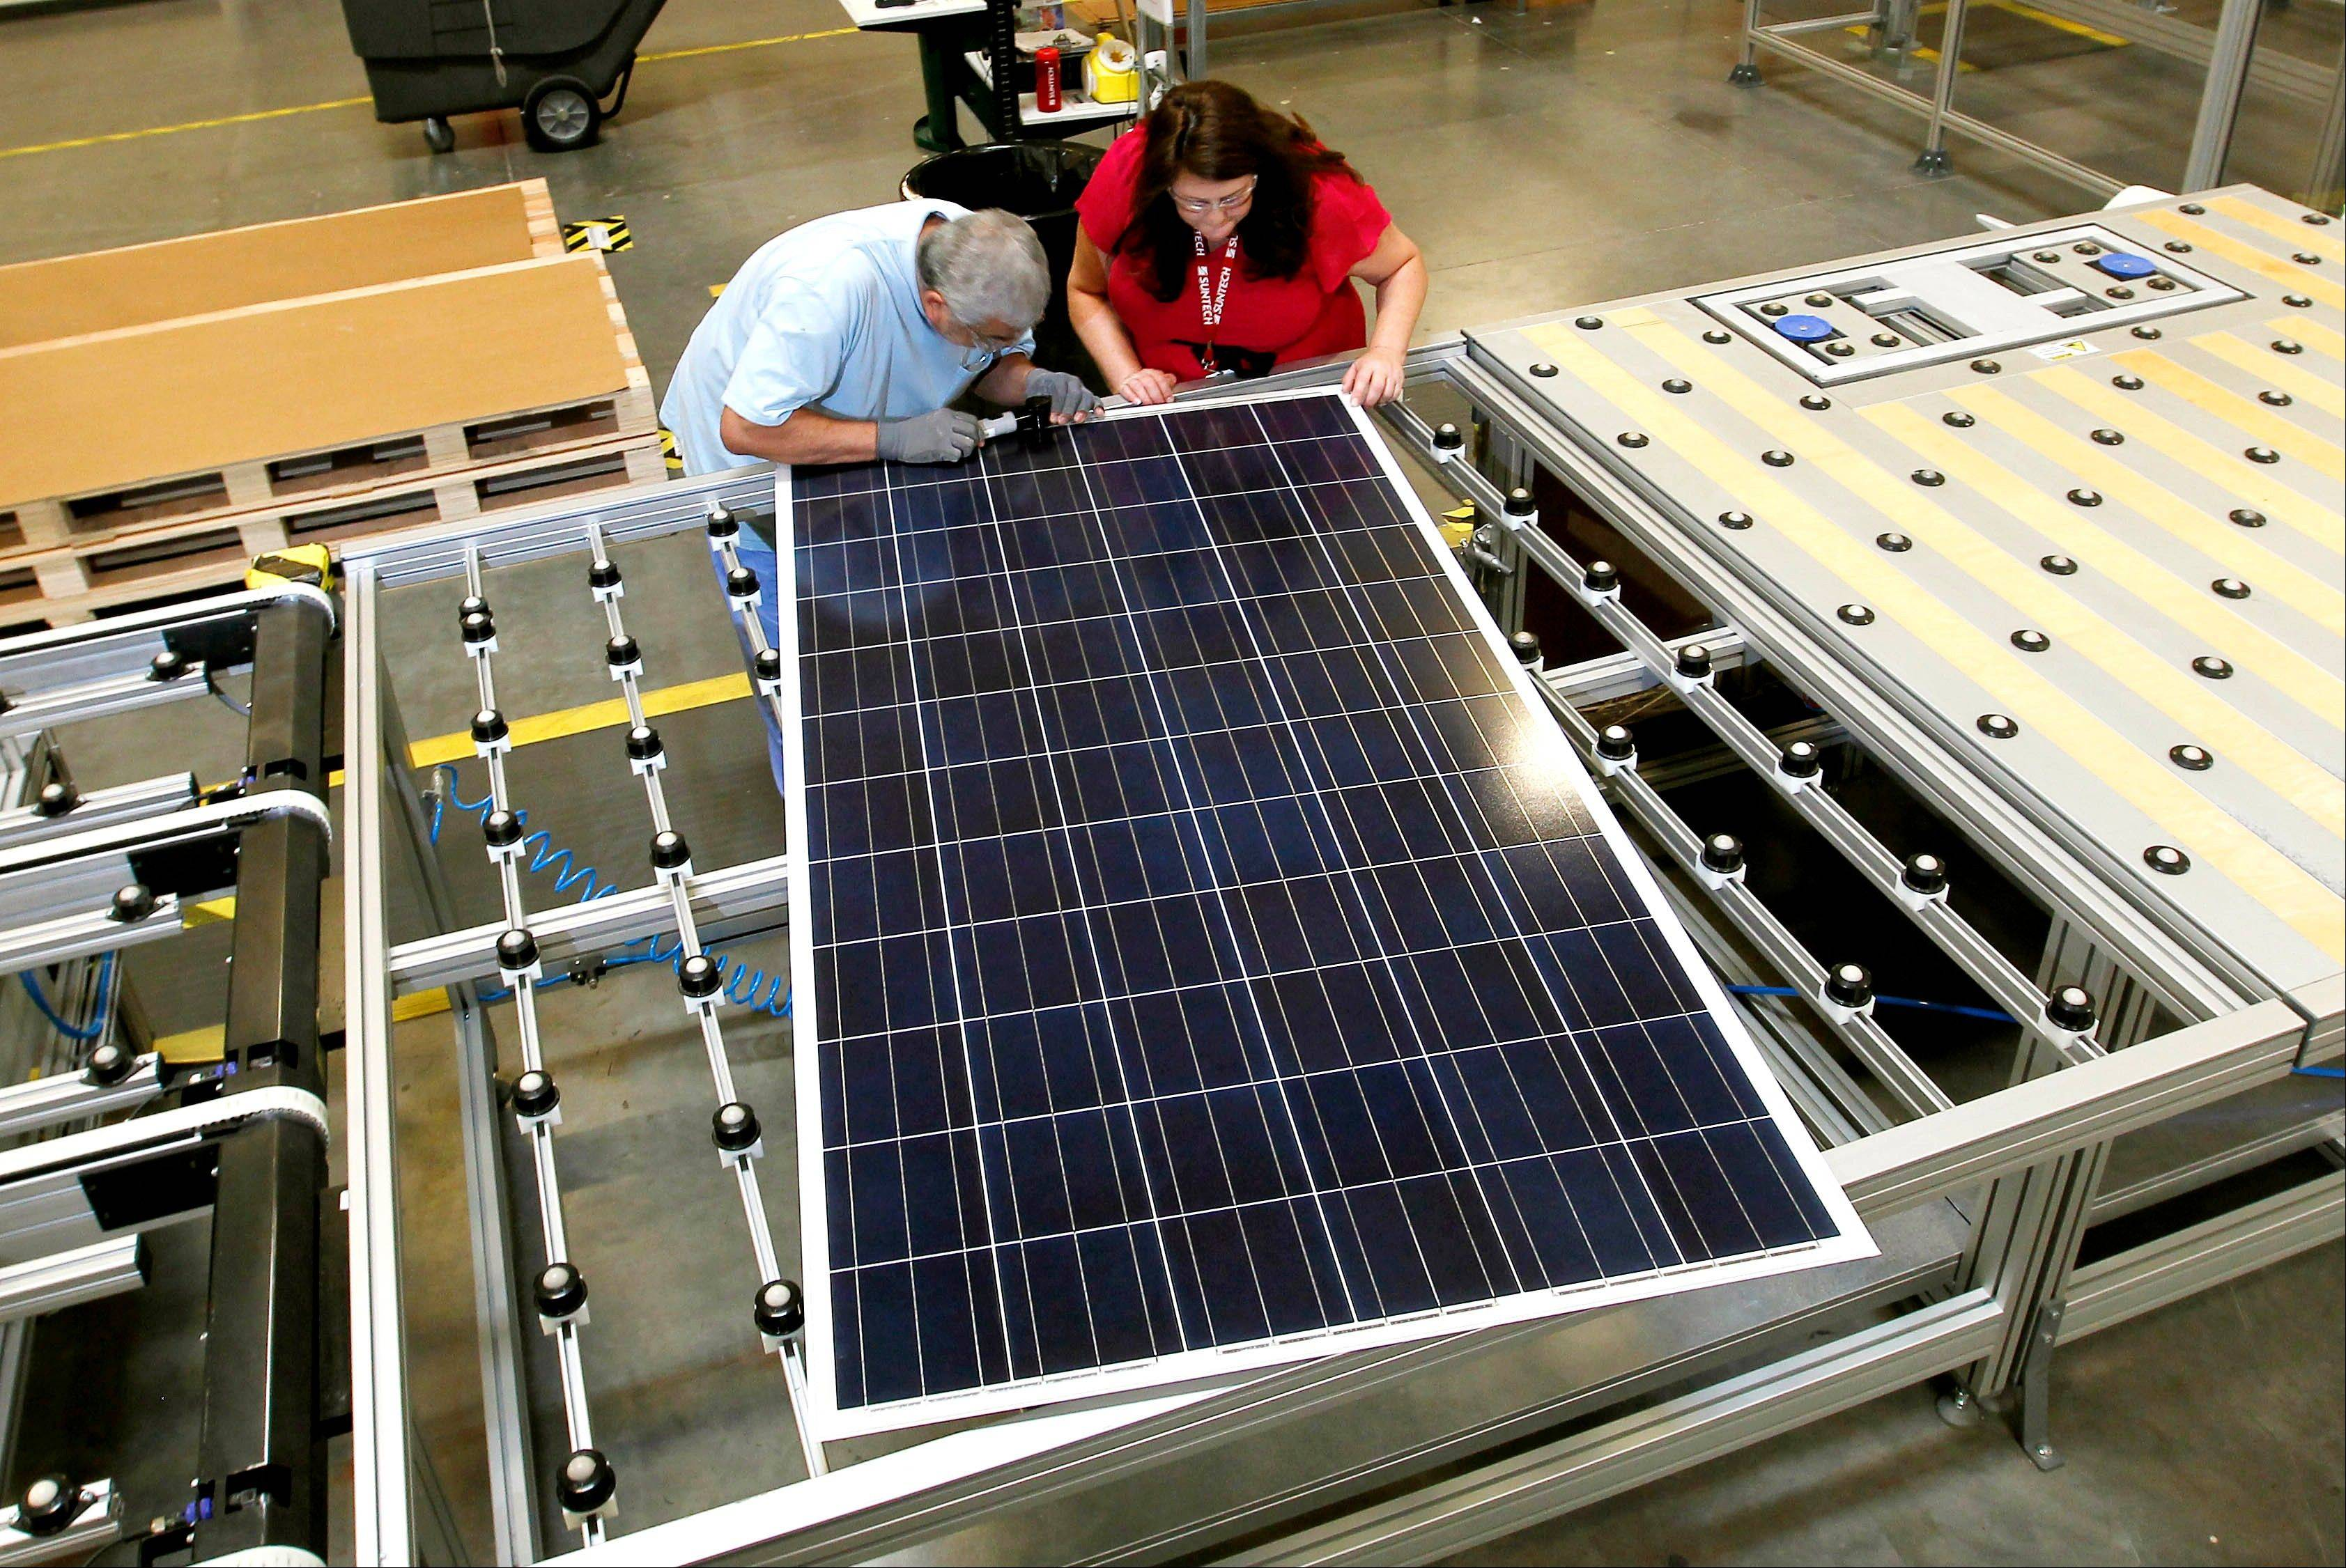 A worker for a Chinese-owned solar panel manufacturer examines a solar panel at a company facility in Goodyear, Ariz. The factory makes solar panels for one of the world�s biggest solar manufacturers.